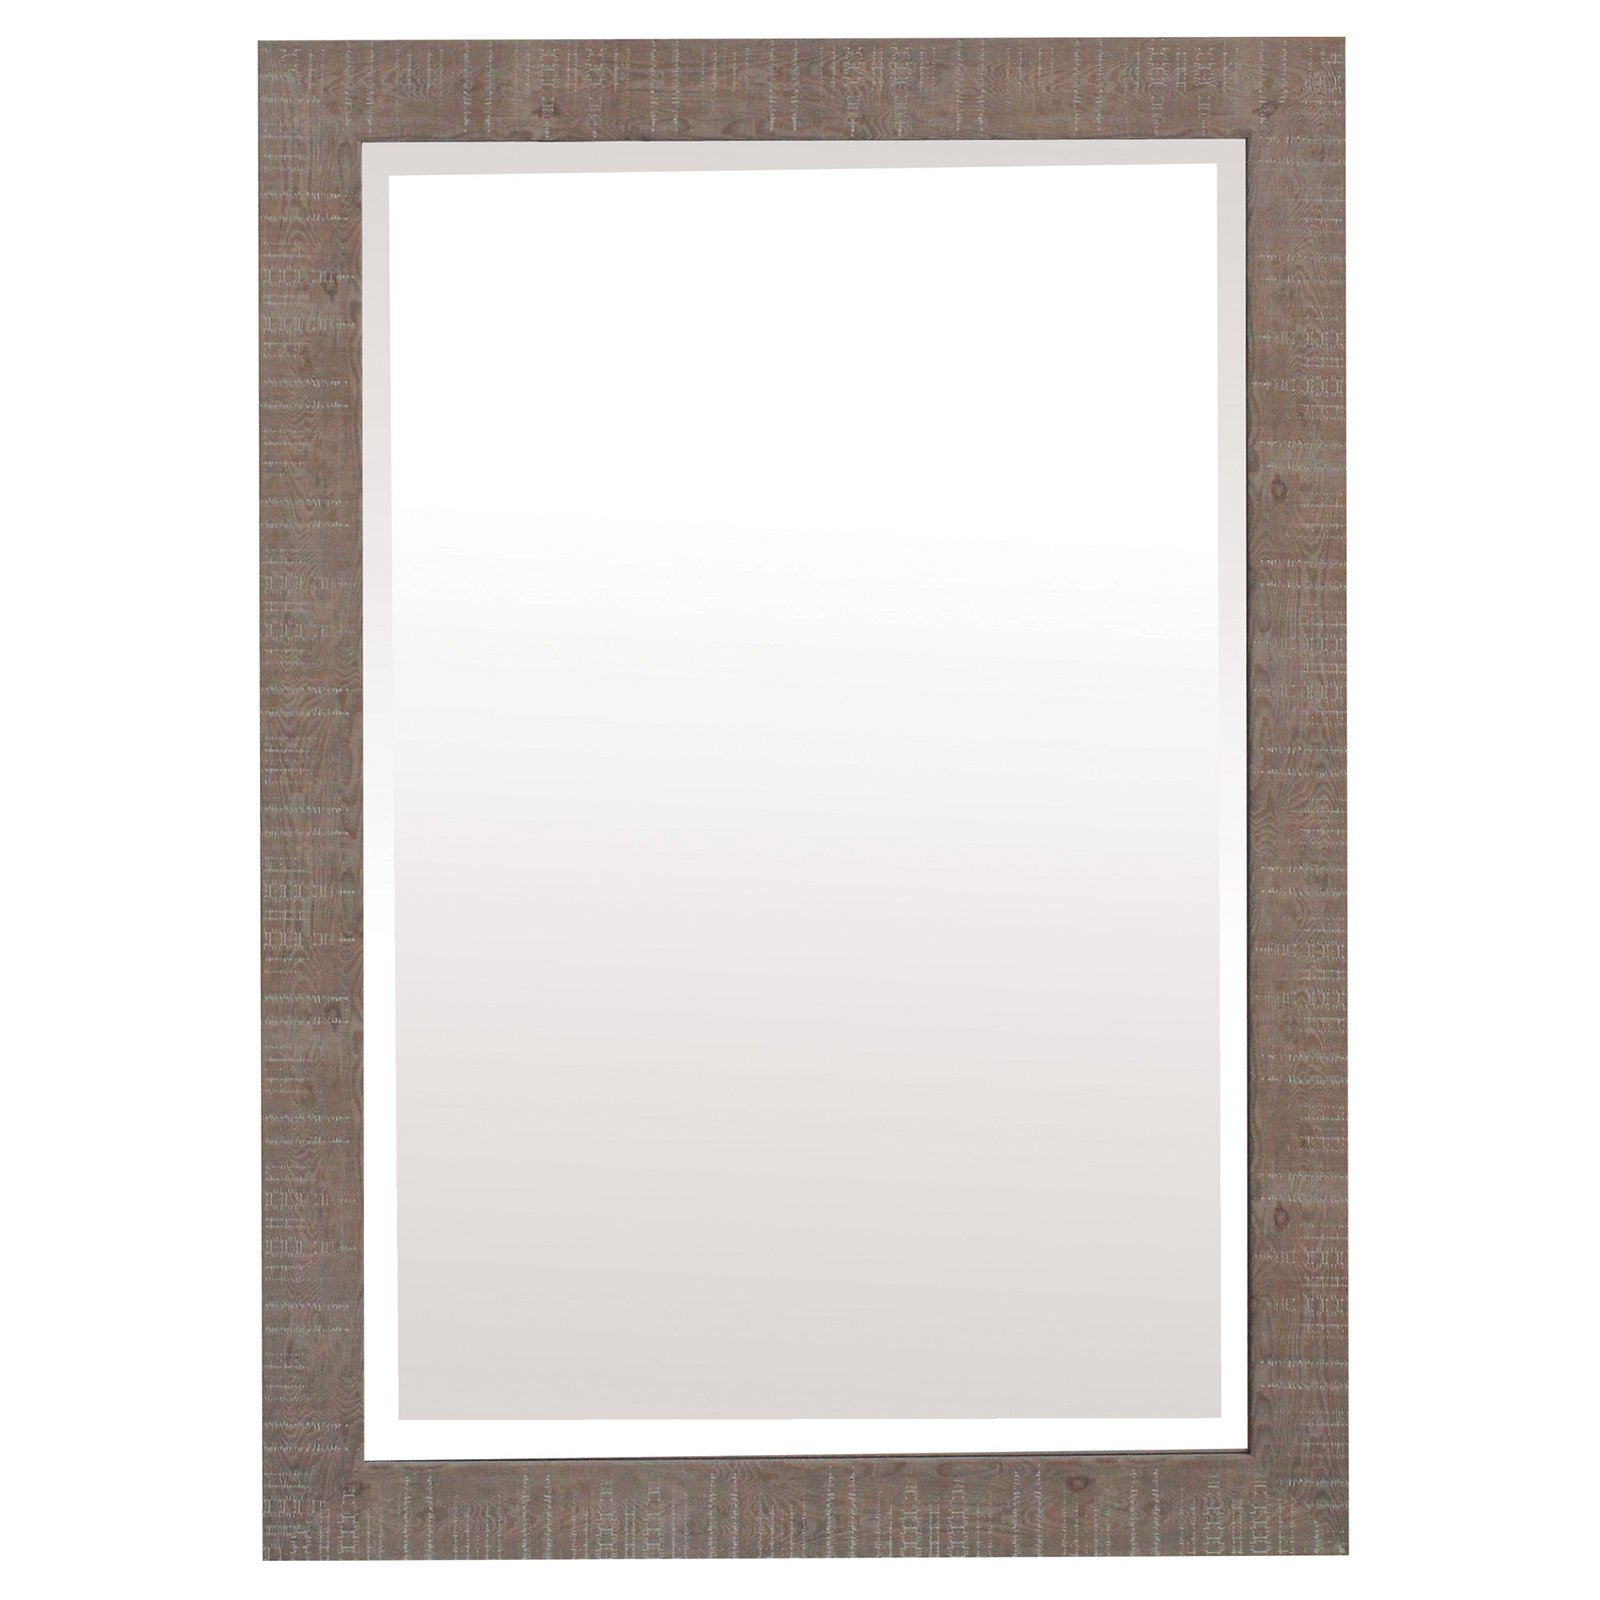 Yosemite Home Shallow Brown Texture Wood Framed Wall Mirror by Yosemite